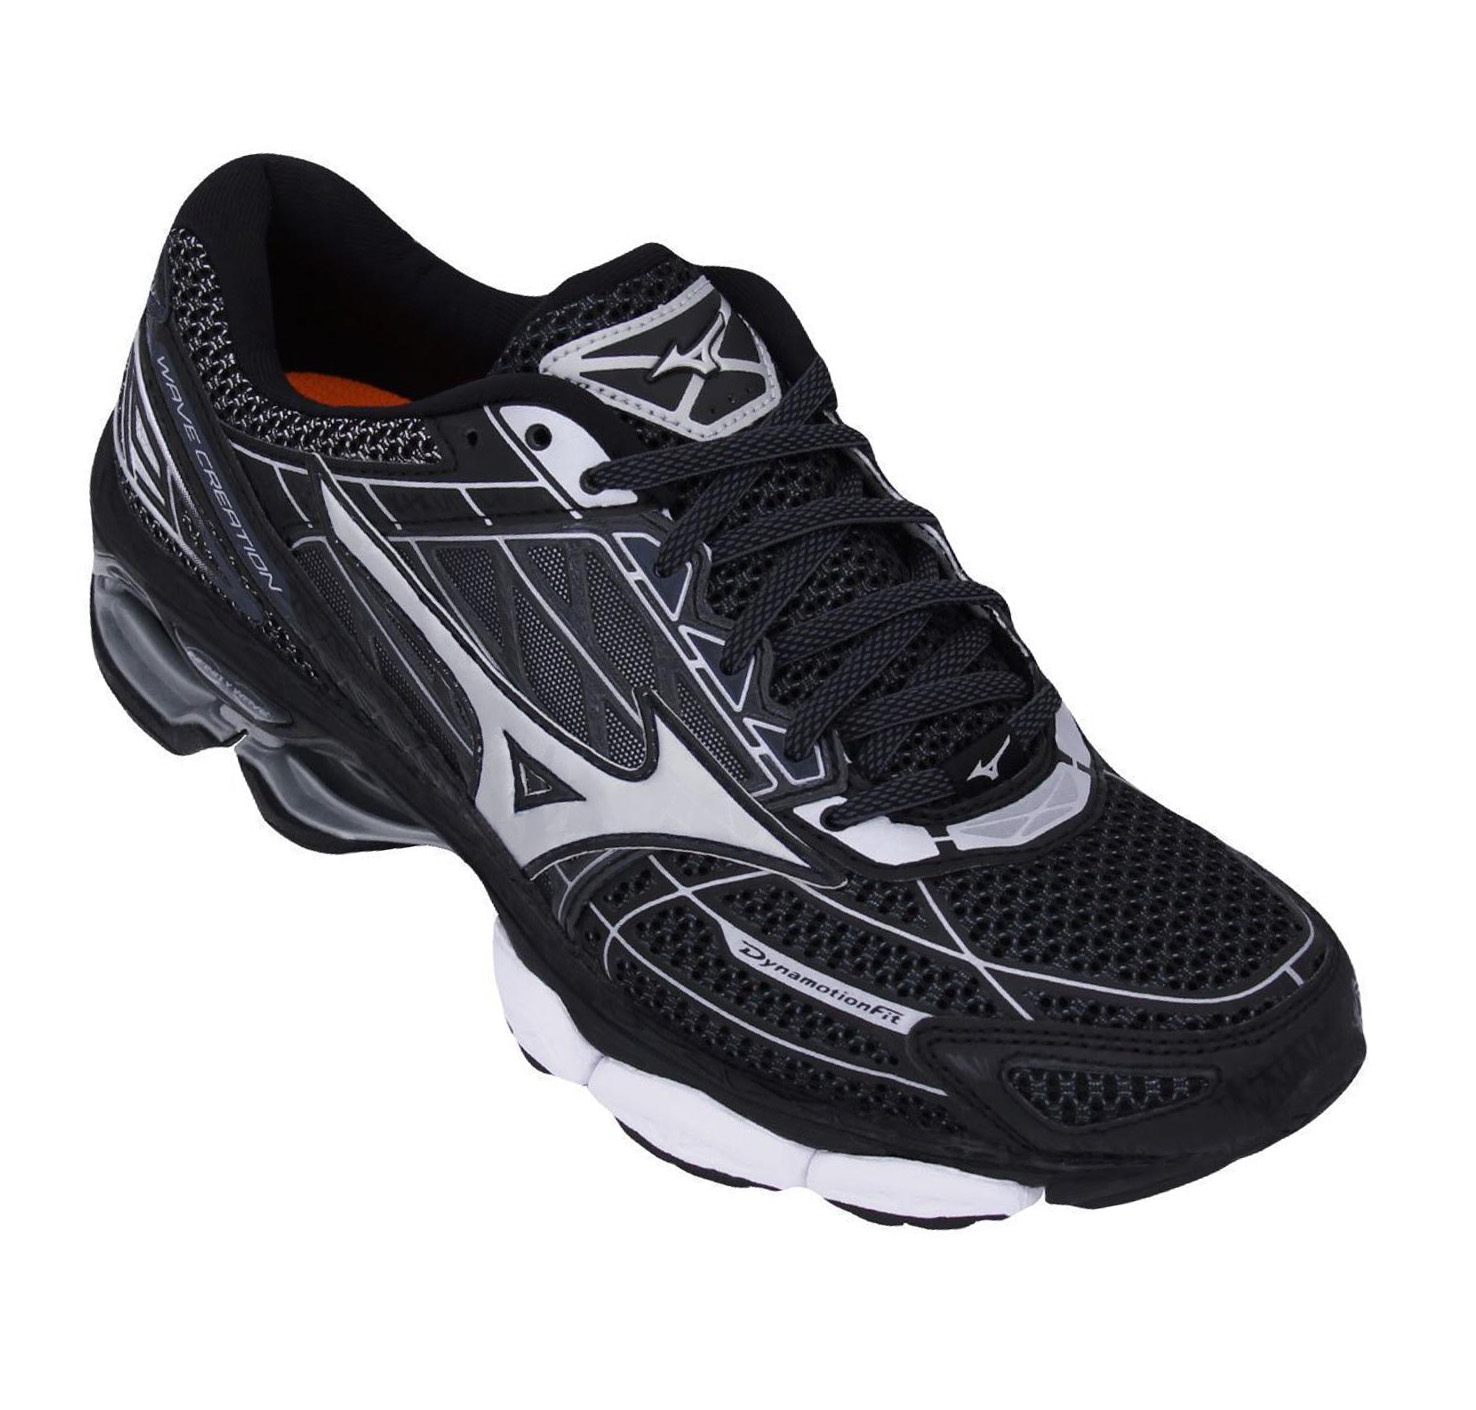 Tenis Mizuno Wave Creation 19 Masculino